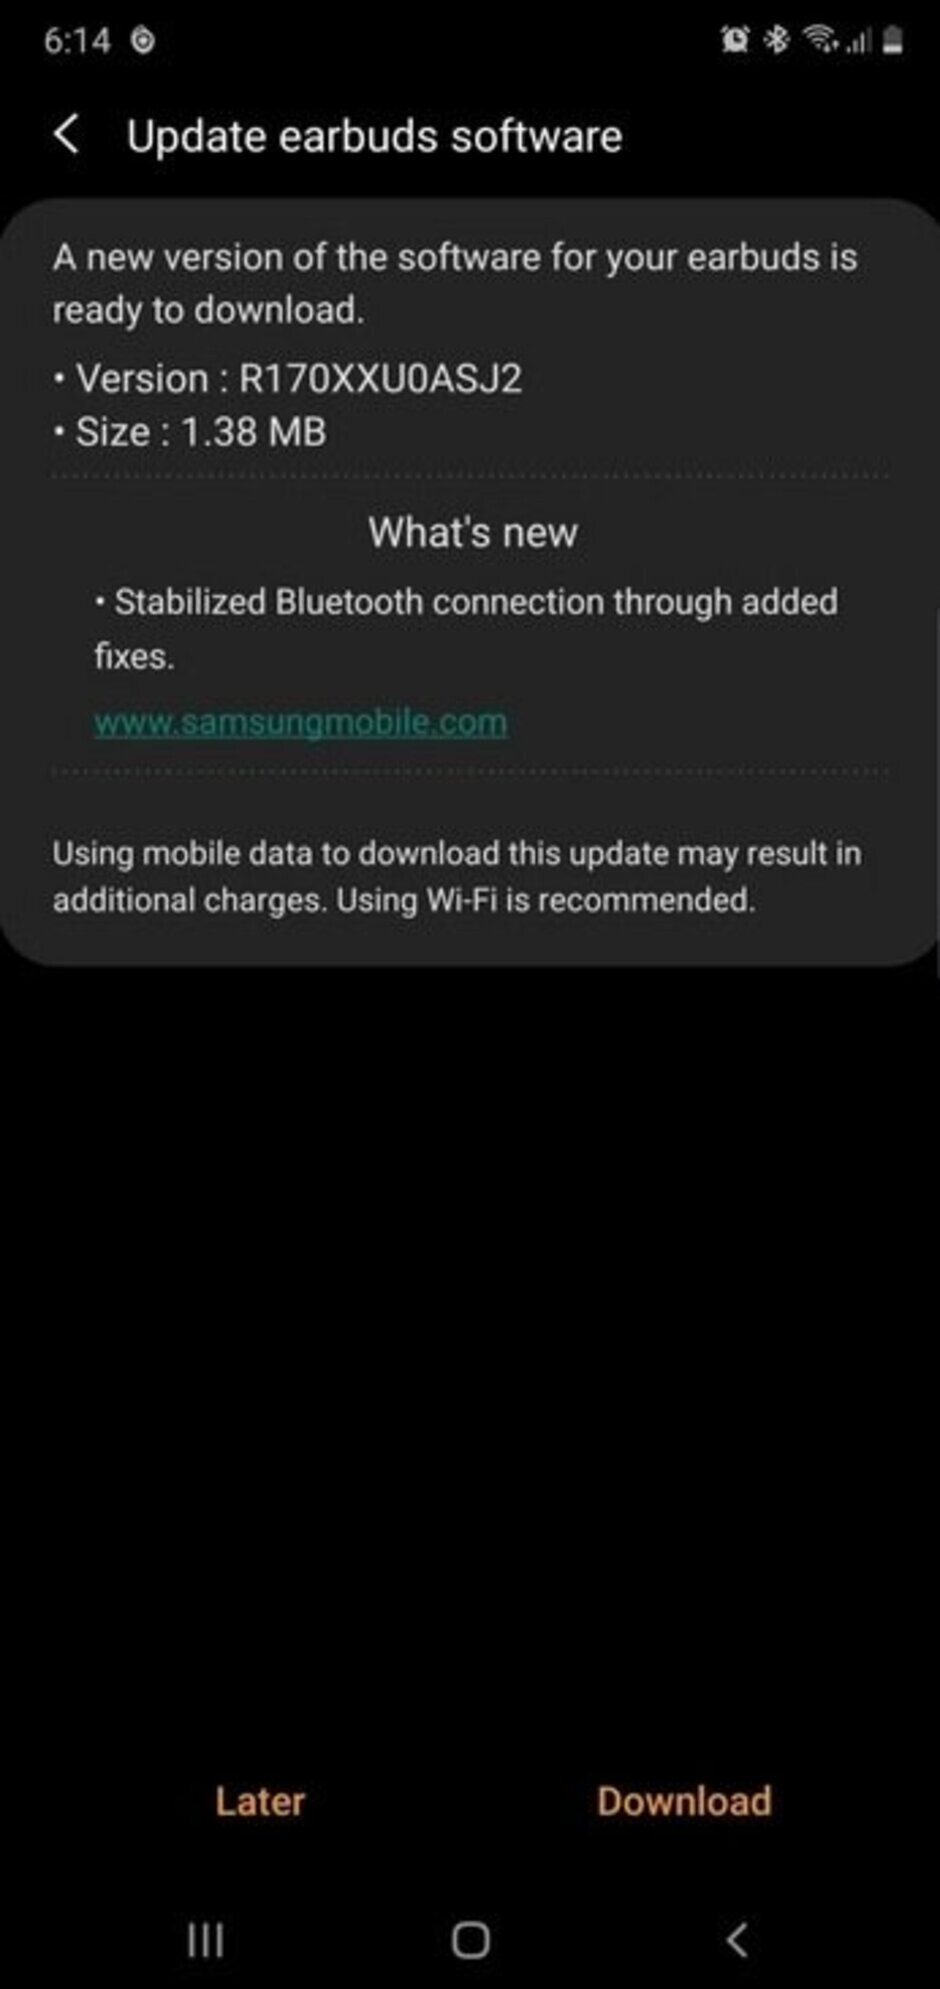 Samsung Galaxy Buds owners have received an update - Samsung's Galaxy Buds receive update to improve Bluetooth connectivity